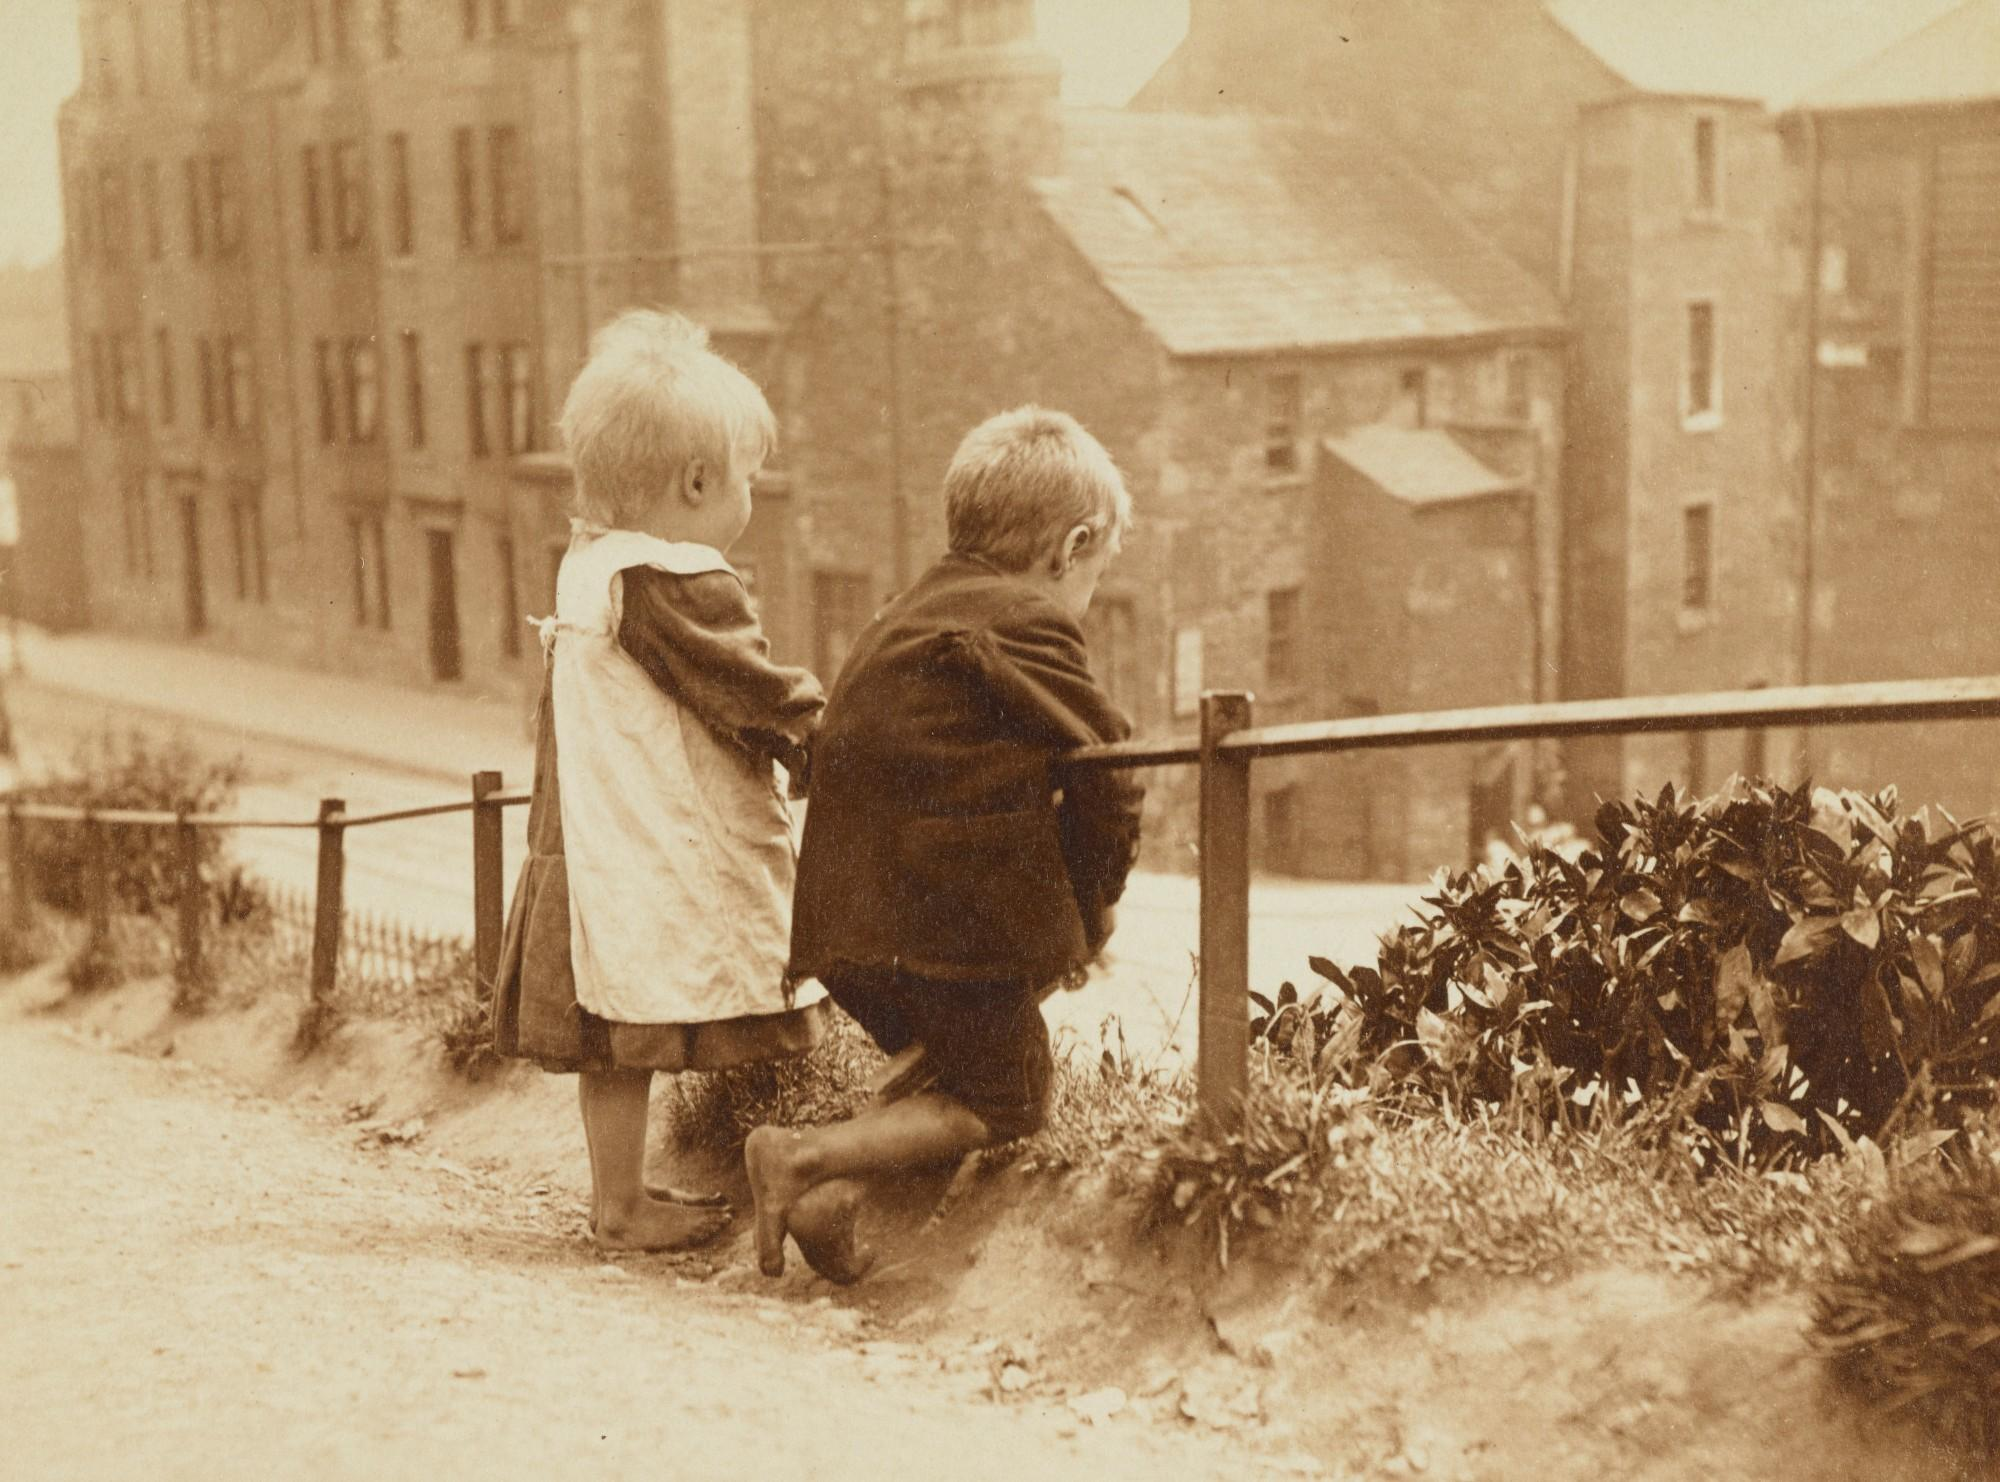 small children look down at a city block